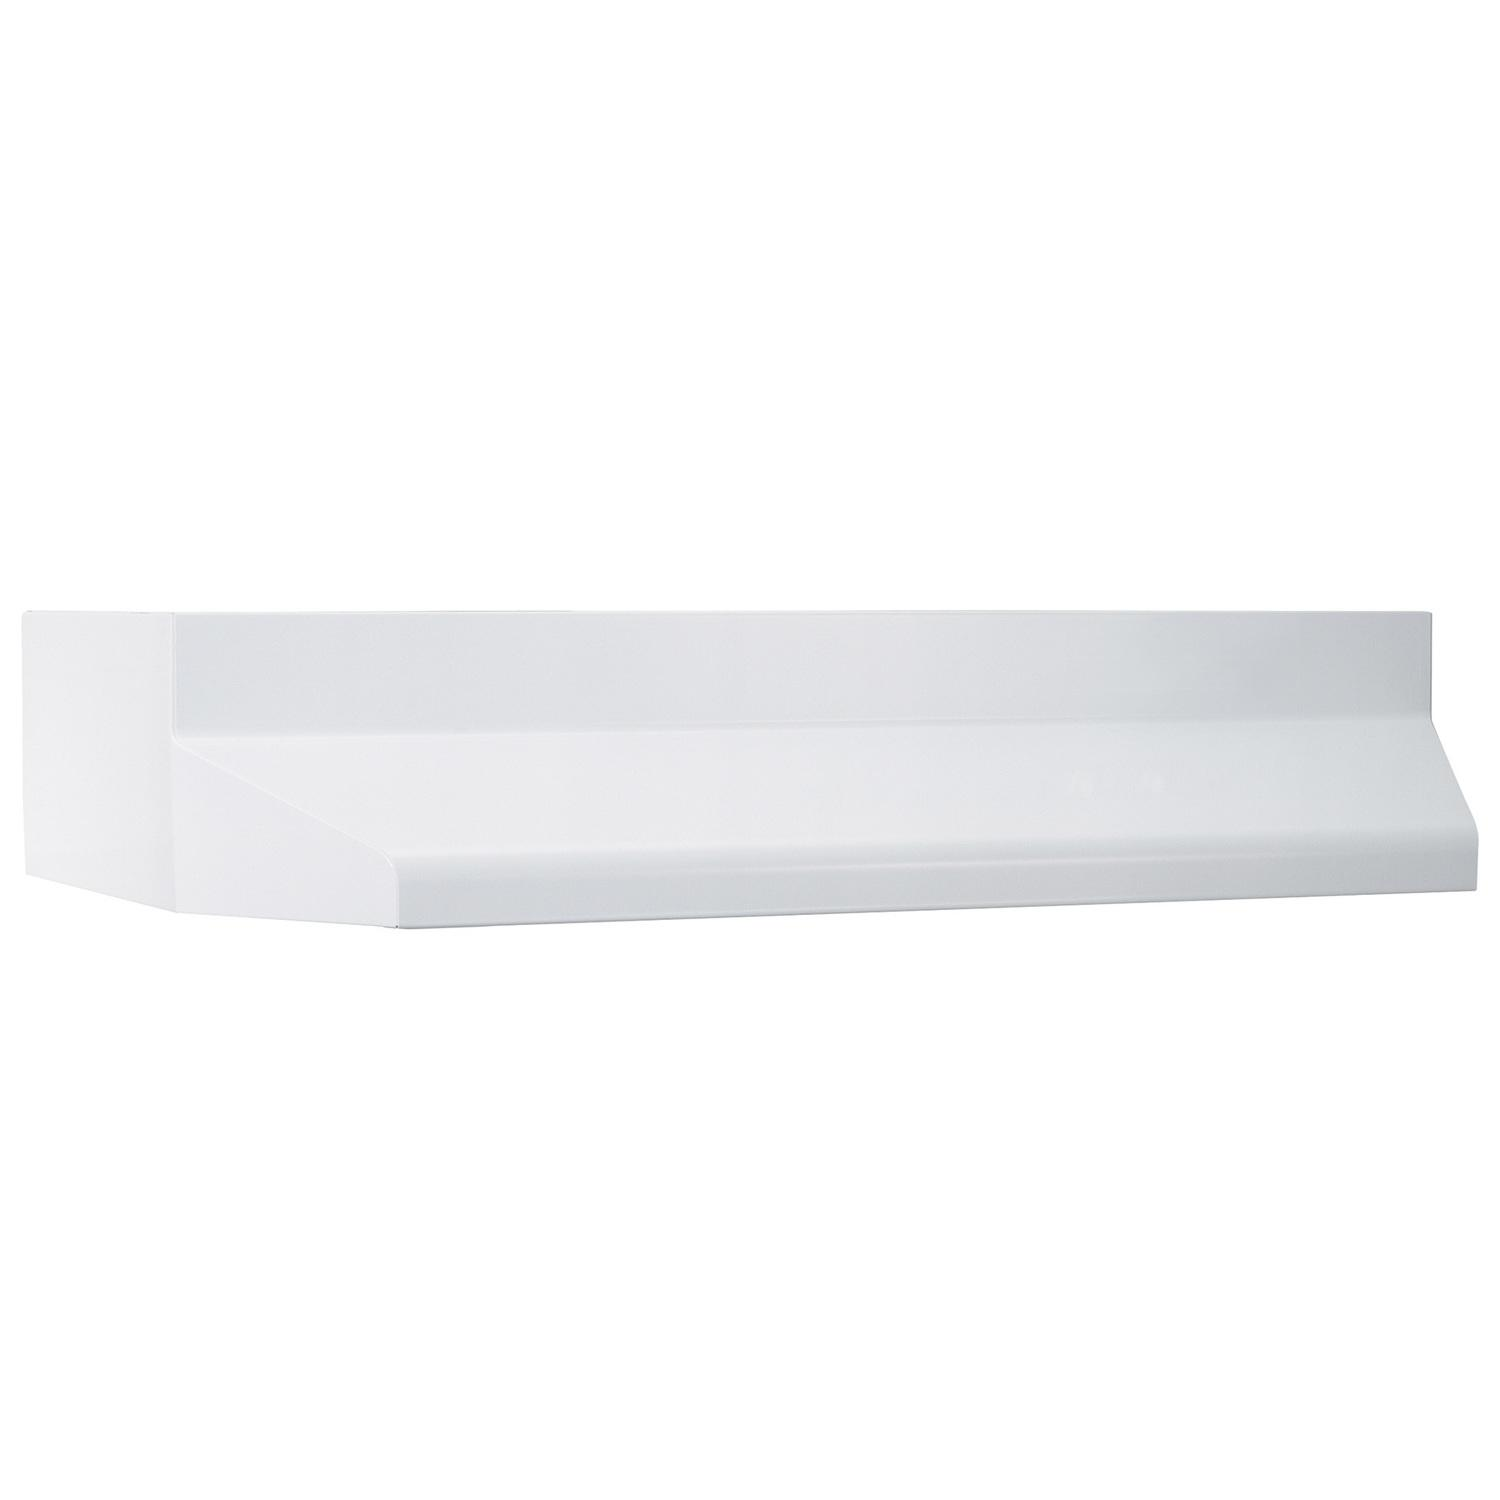 BroanBroan® 37000 Series 30-Inch Range Hood Shell In White